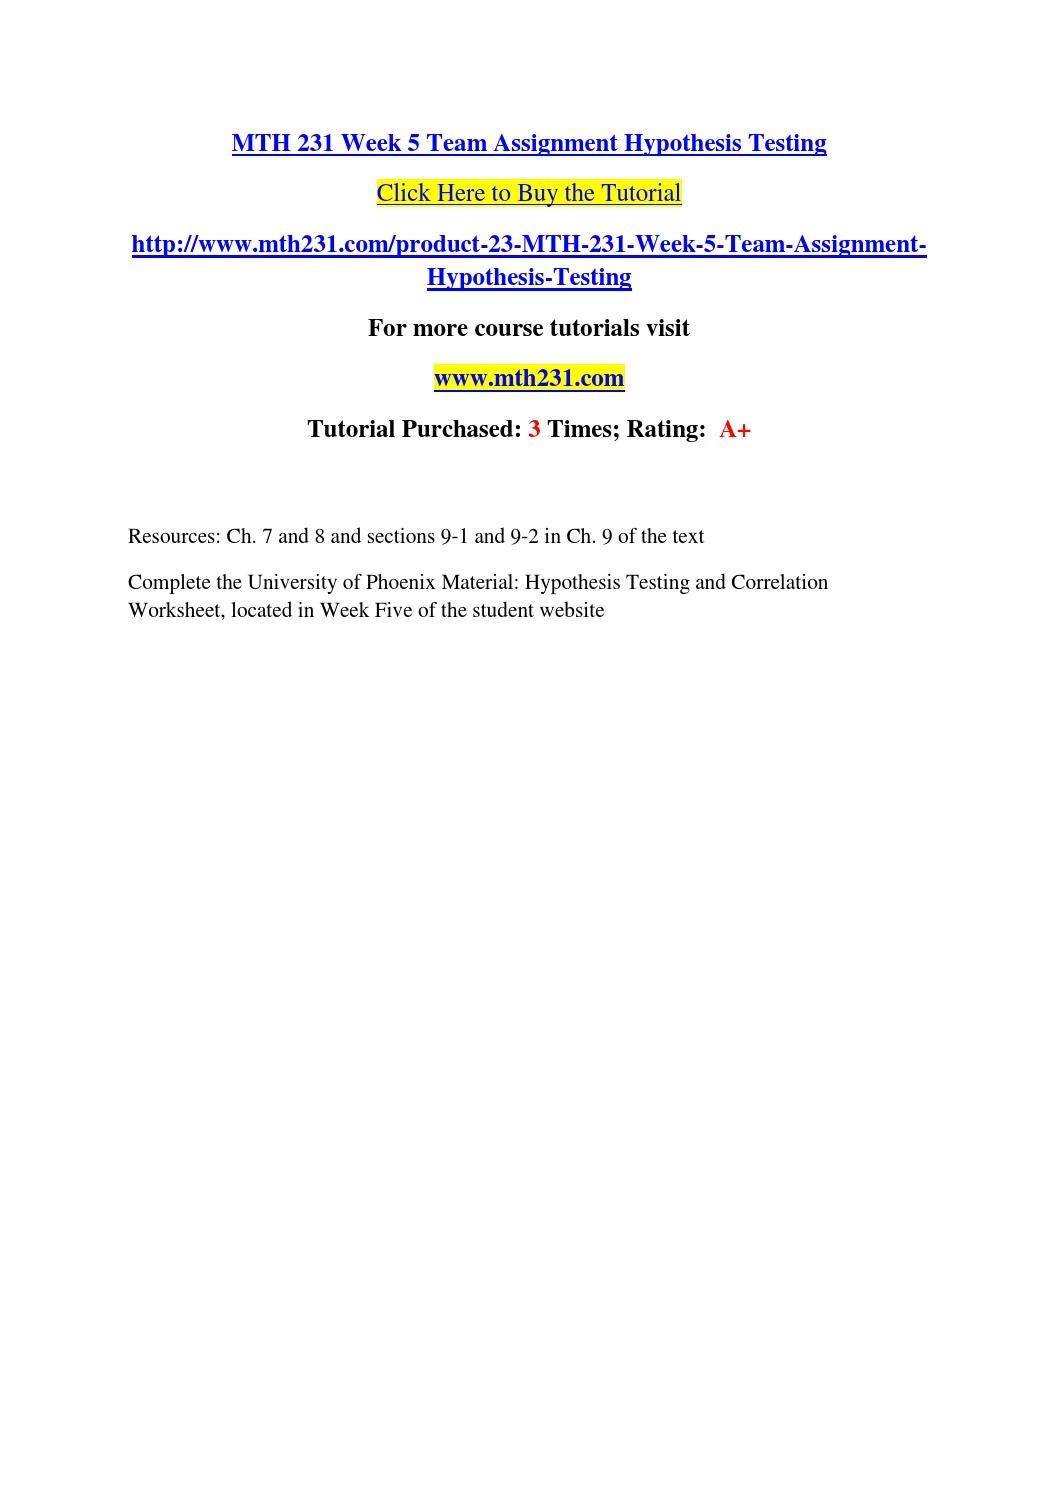 analyzing hypothesis testing essay Null hypothesis essays and research papers | examplesessaytodaybiz  advanced hypothesis testing essay  analyzing and interpreting data.